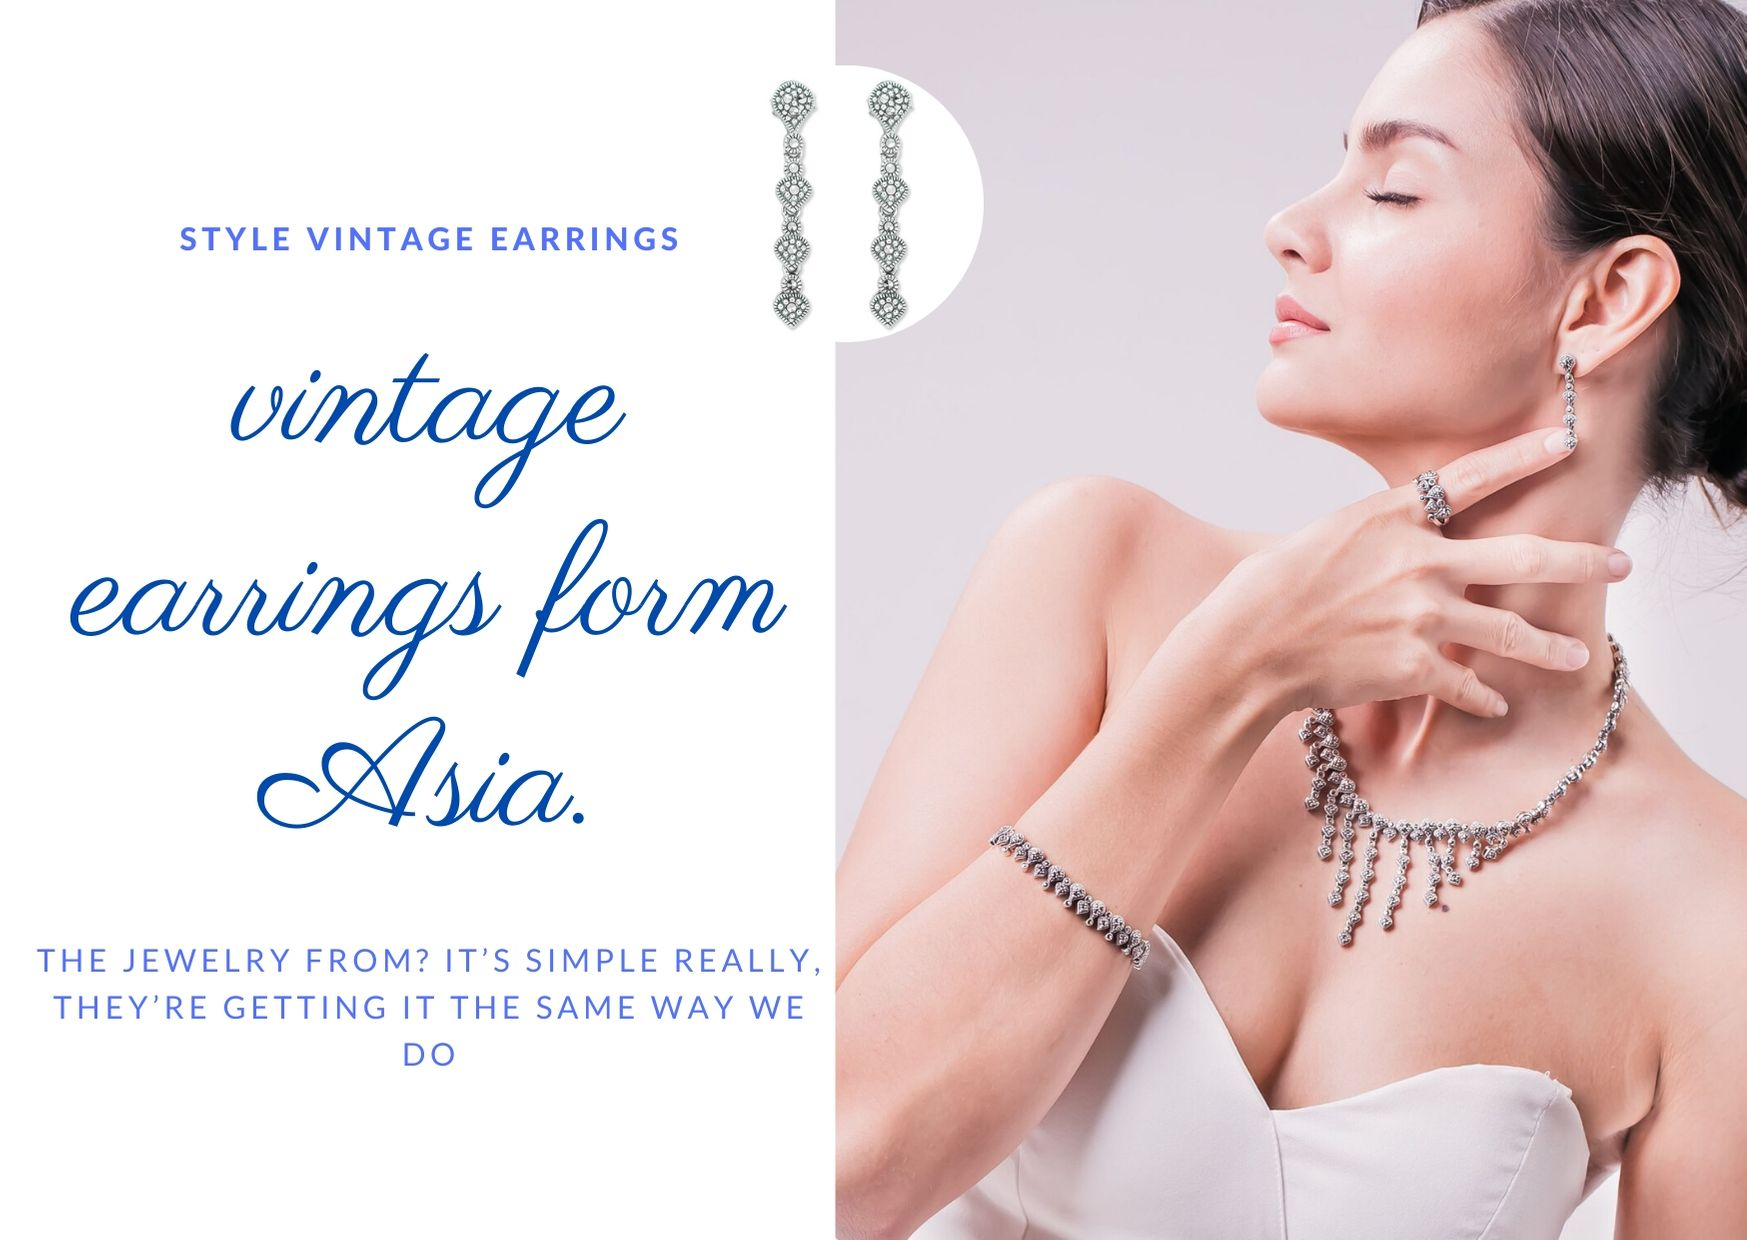 How to style vintage earrings